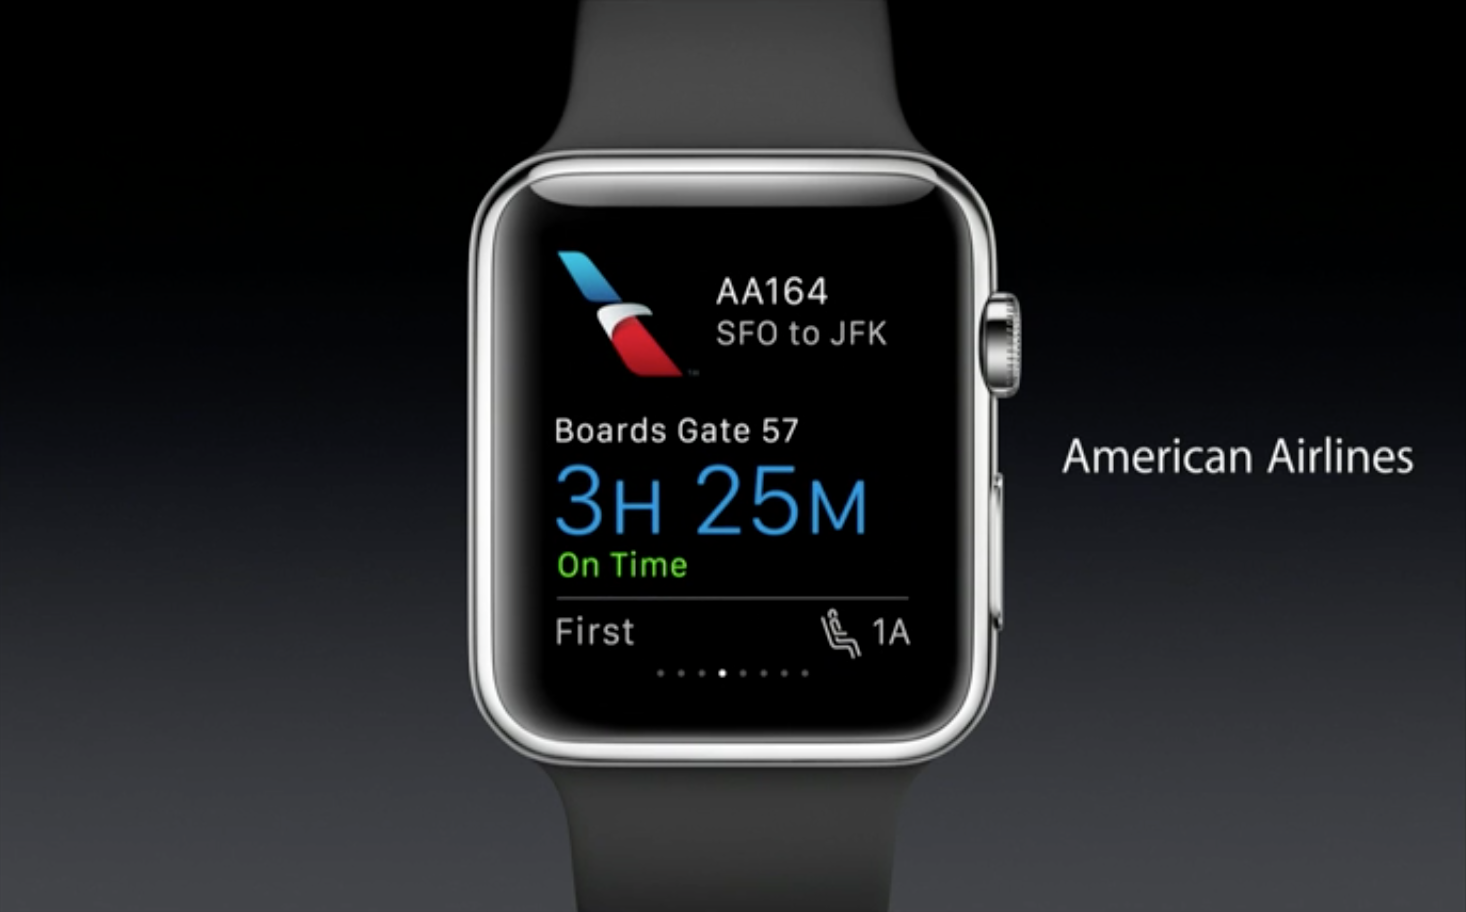 American Airlines Apple Watch